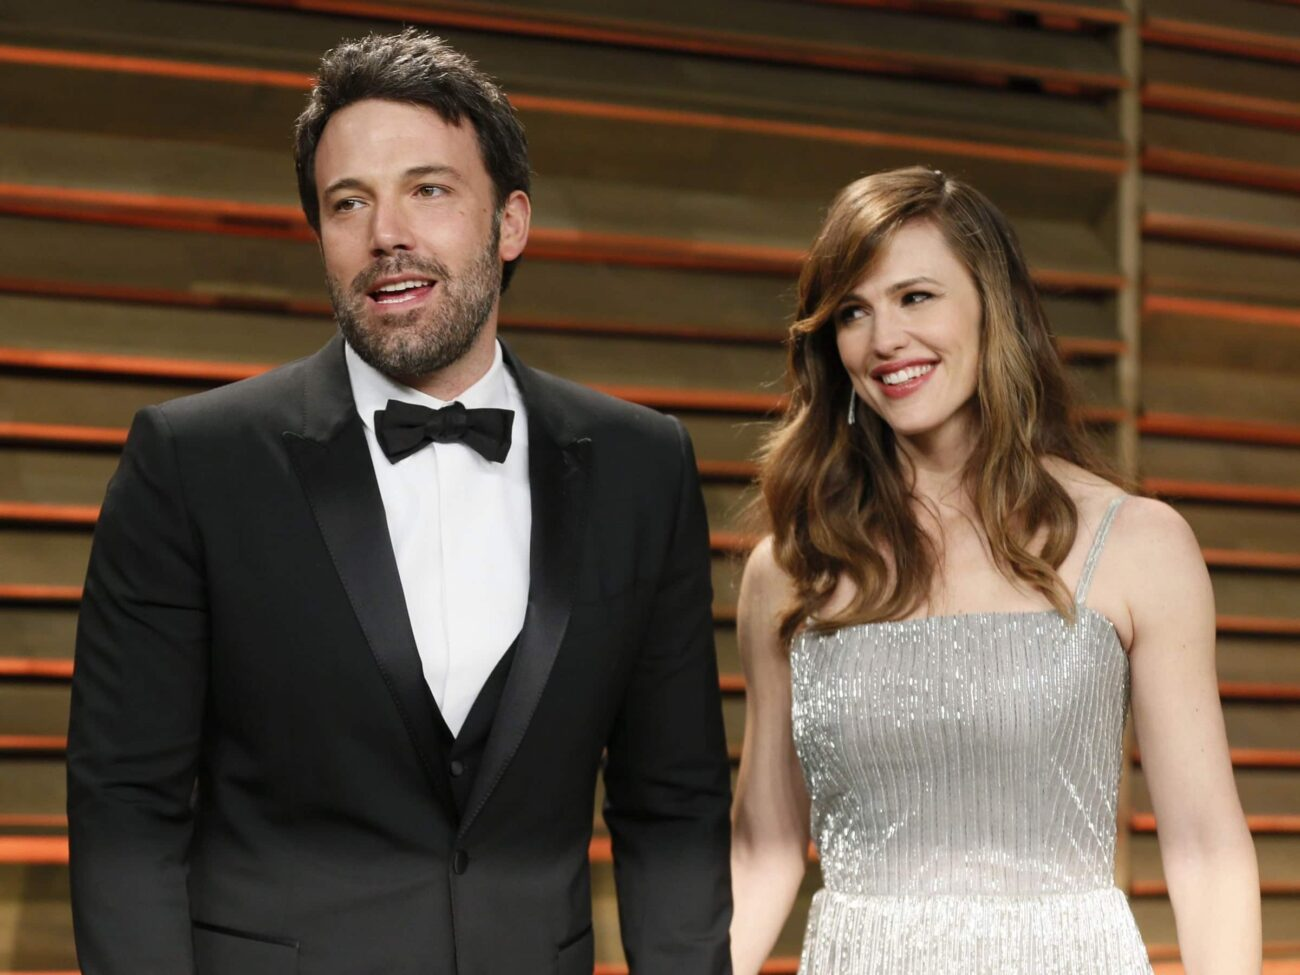 Anaffleck is no more. Does that mean the road is clear for a Ben Affleck & Jennifer Garner reunion? Take a walk down Bennifer 2.0's history lane!